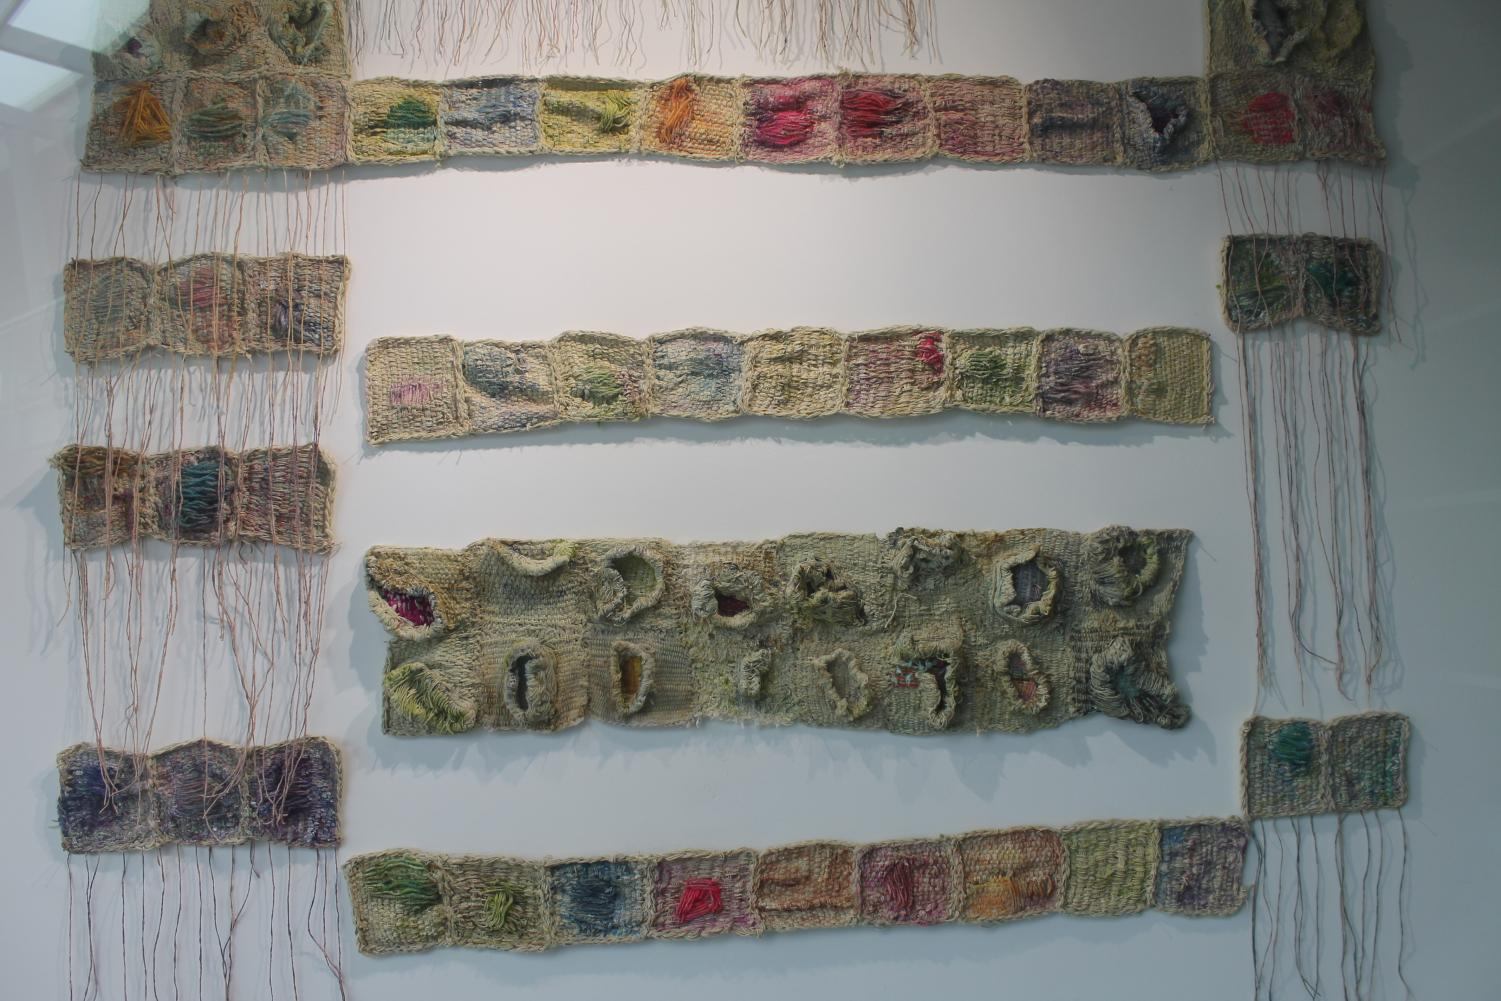 Using cotton and wool, Dawn Ertl demonstrated the mutations and trauma that affect us and carry into later generations.